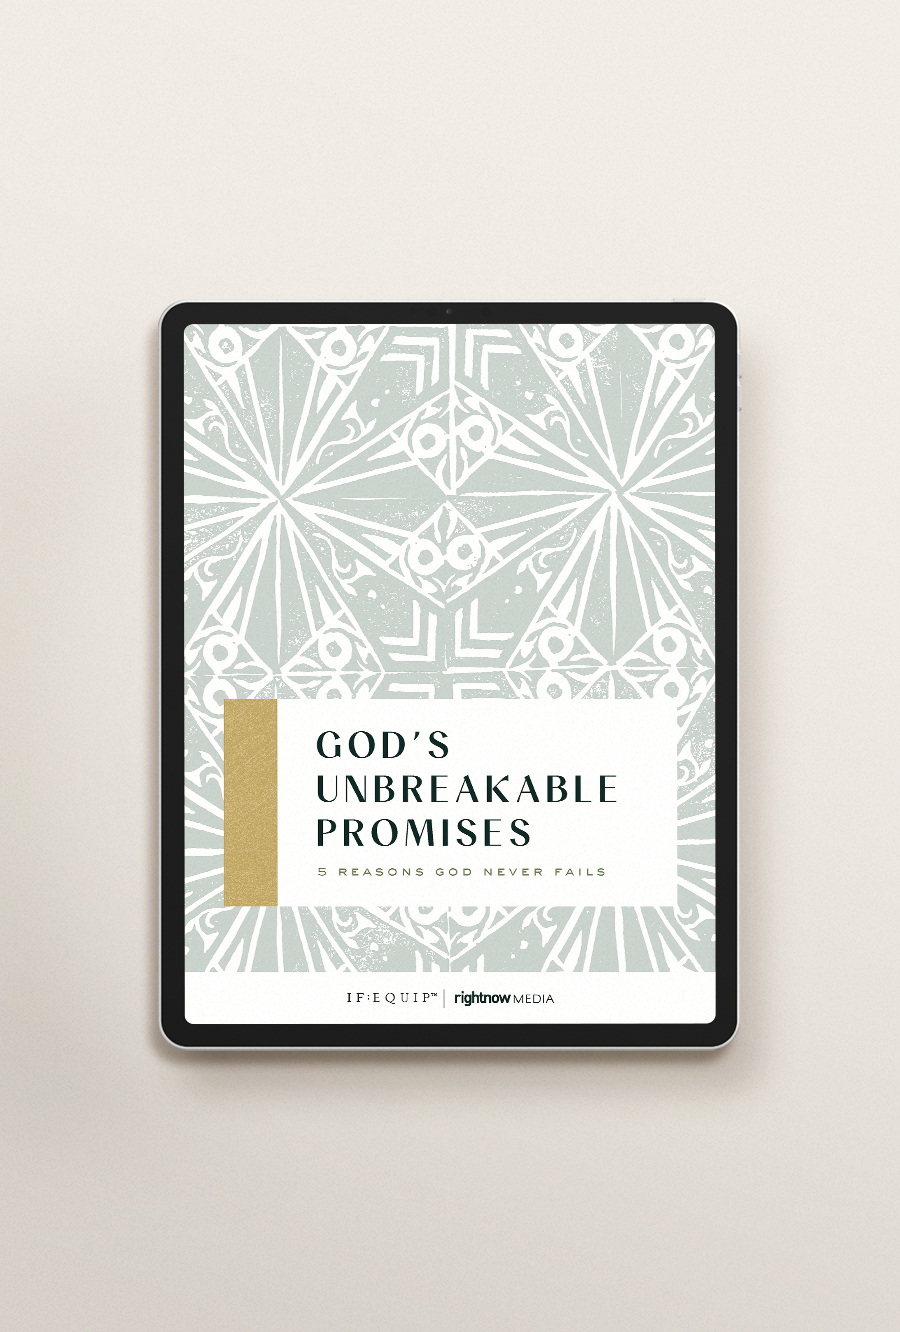 God's Unbreakable Promises Book Cover